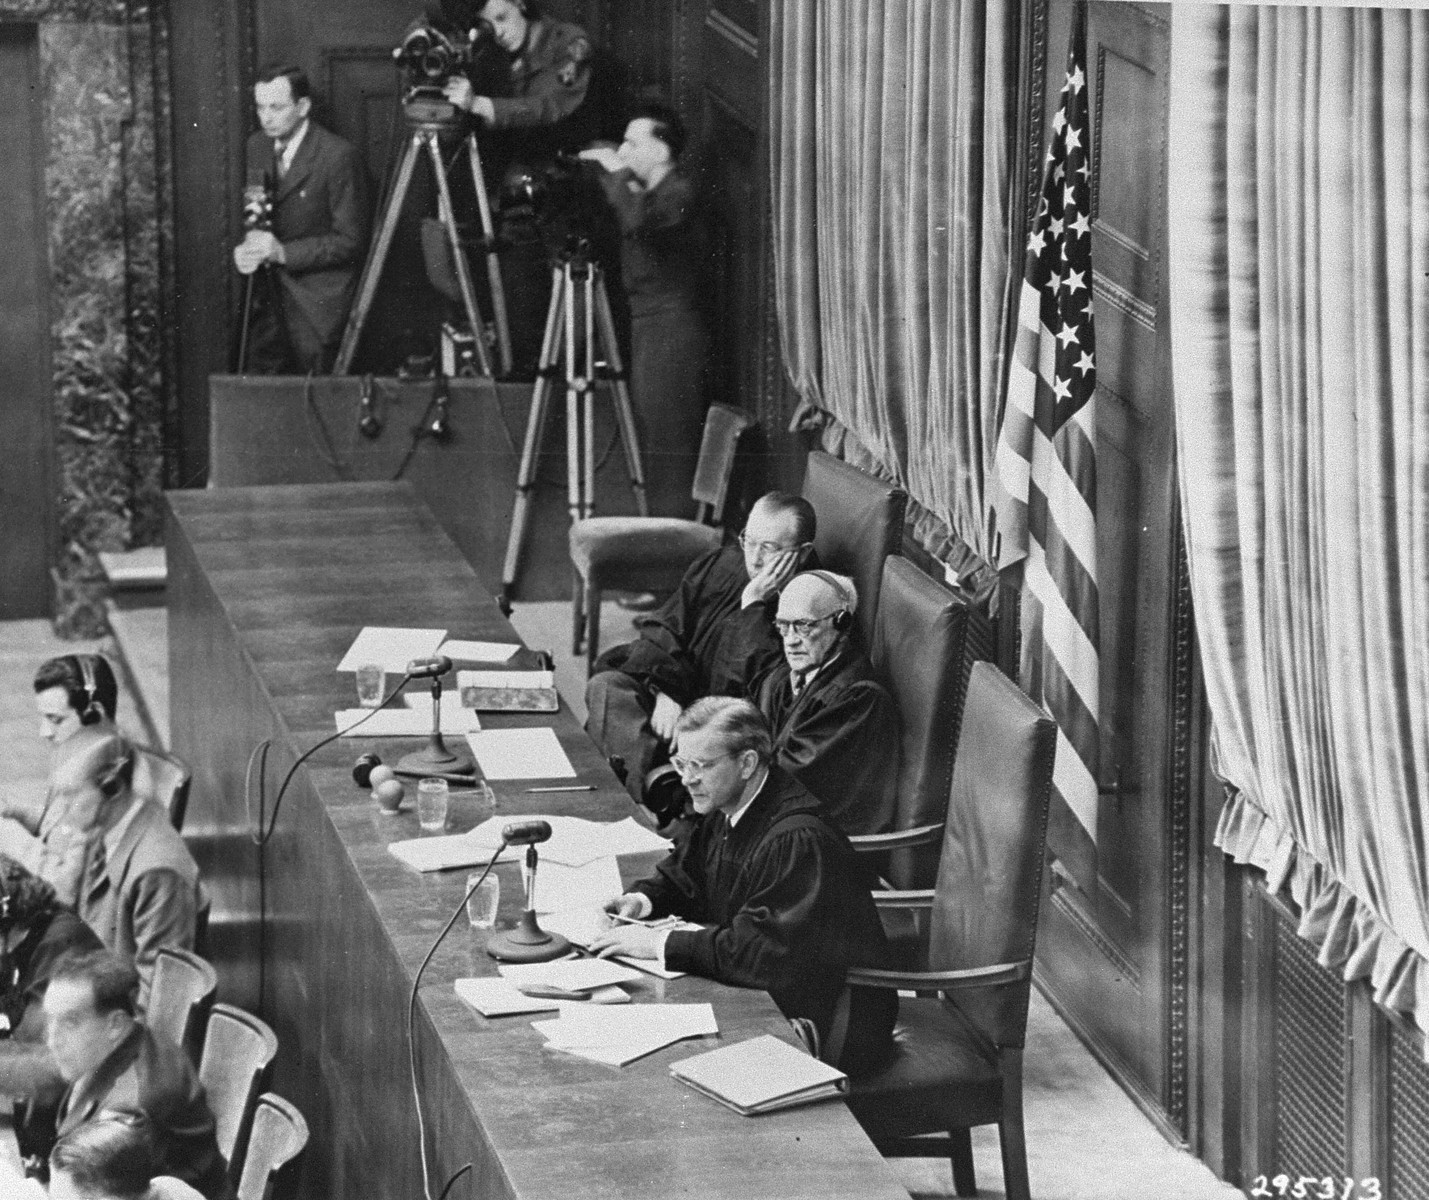 Subsequent Nuremberg trials Series of military tribunals held in Germany after World War II